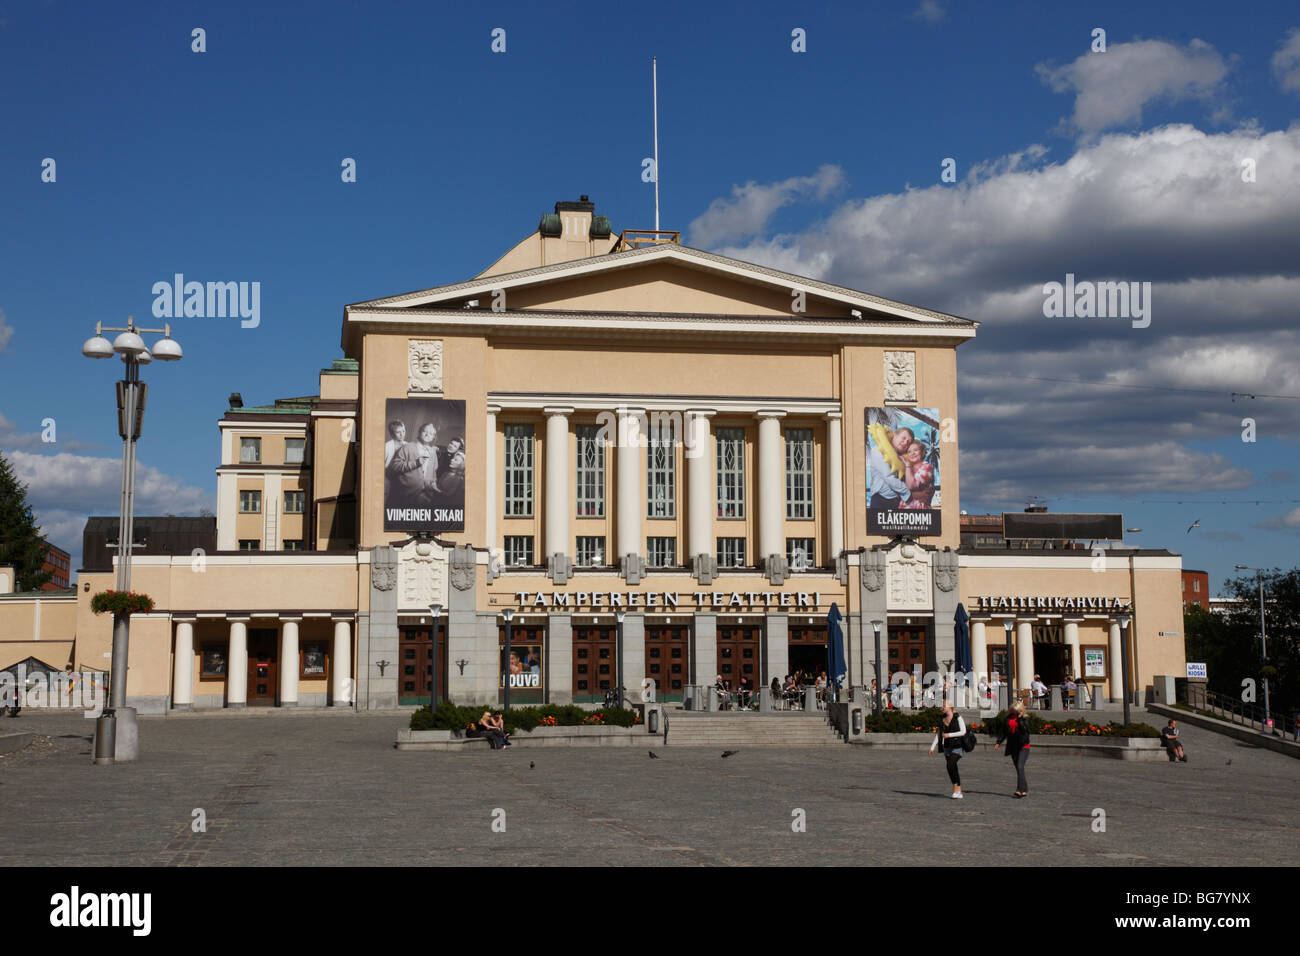 Finland, Region of Pirkanmaa, Tampere, City, Central Square, Neo-Classical Tampere Theatre - Stock Image